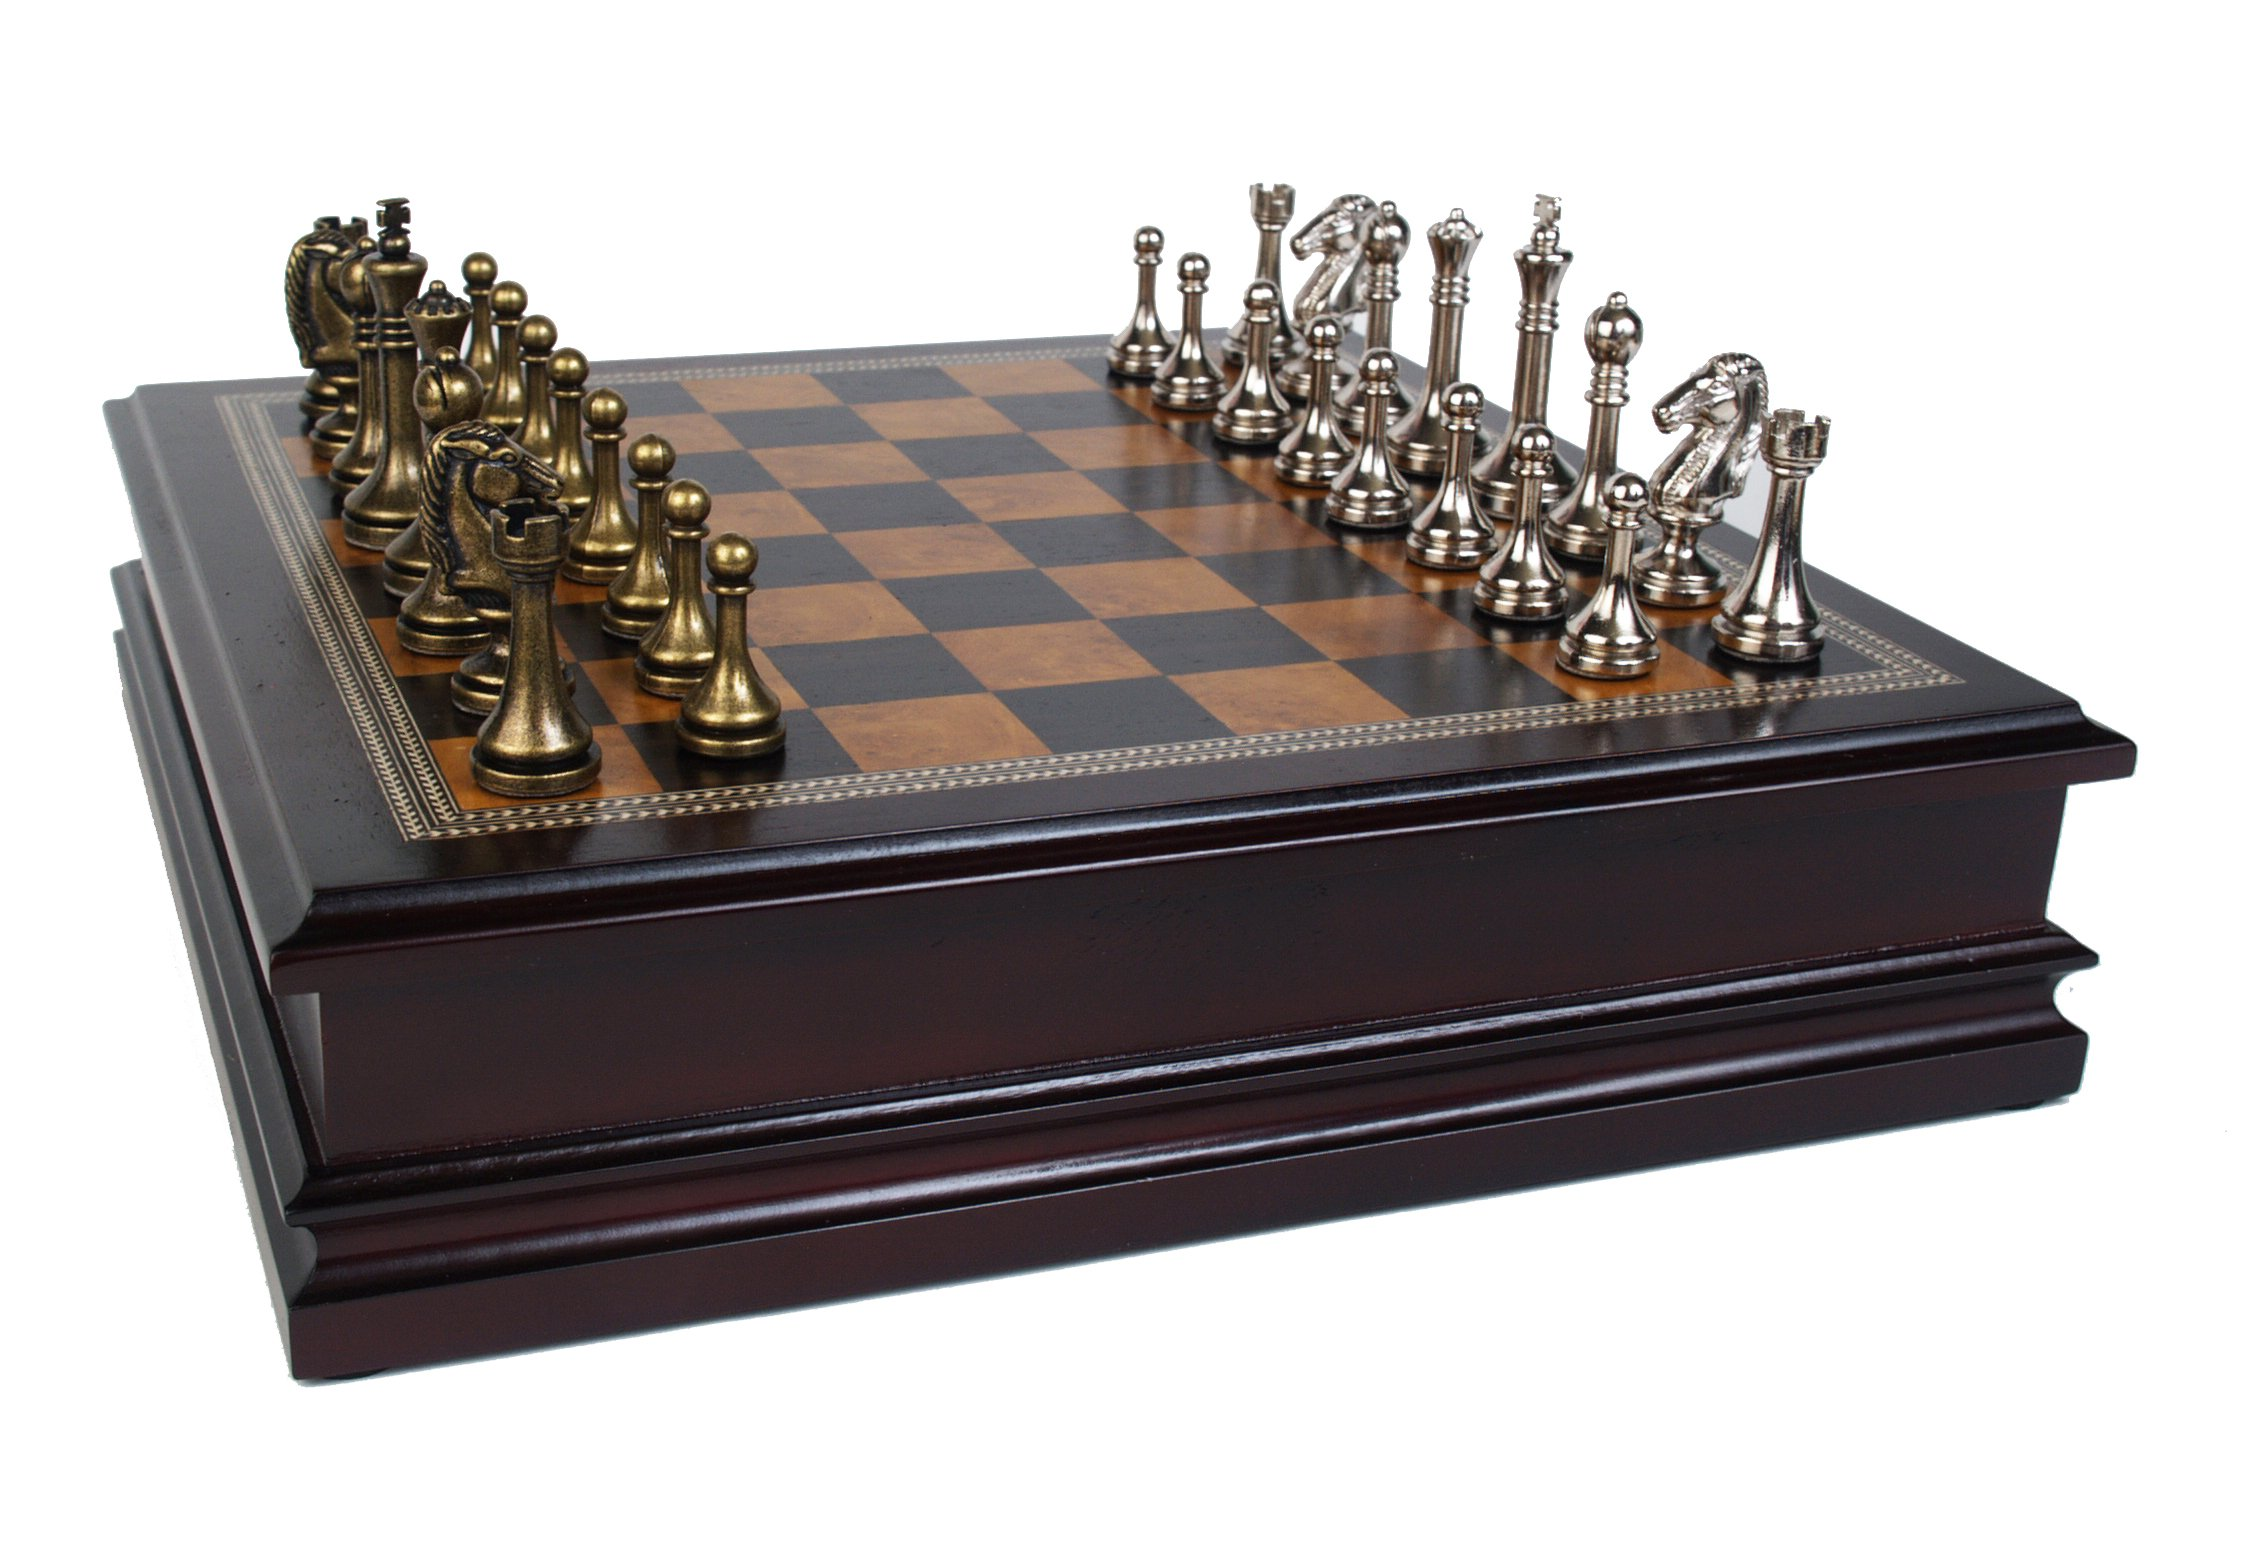 Classic Game Collection Metal Chess Set With Deluxe Wood Board and Storage - 2.5'' King